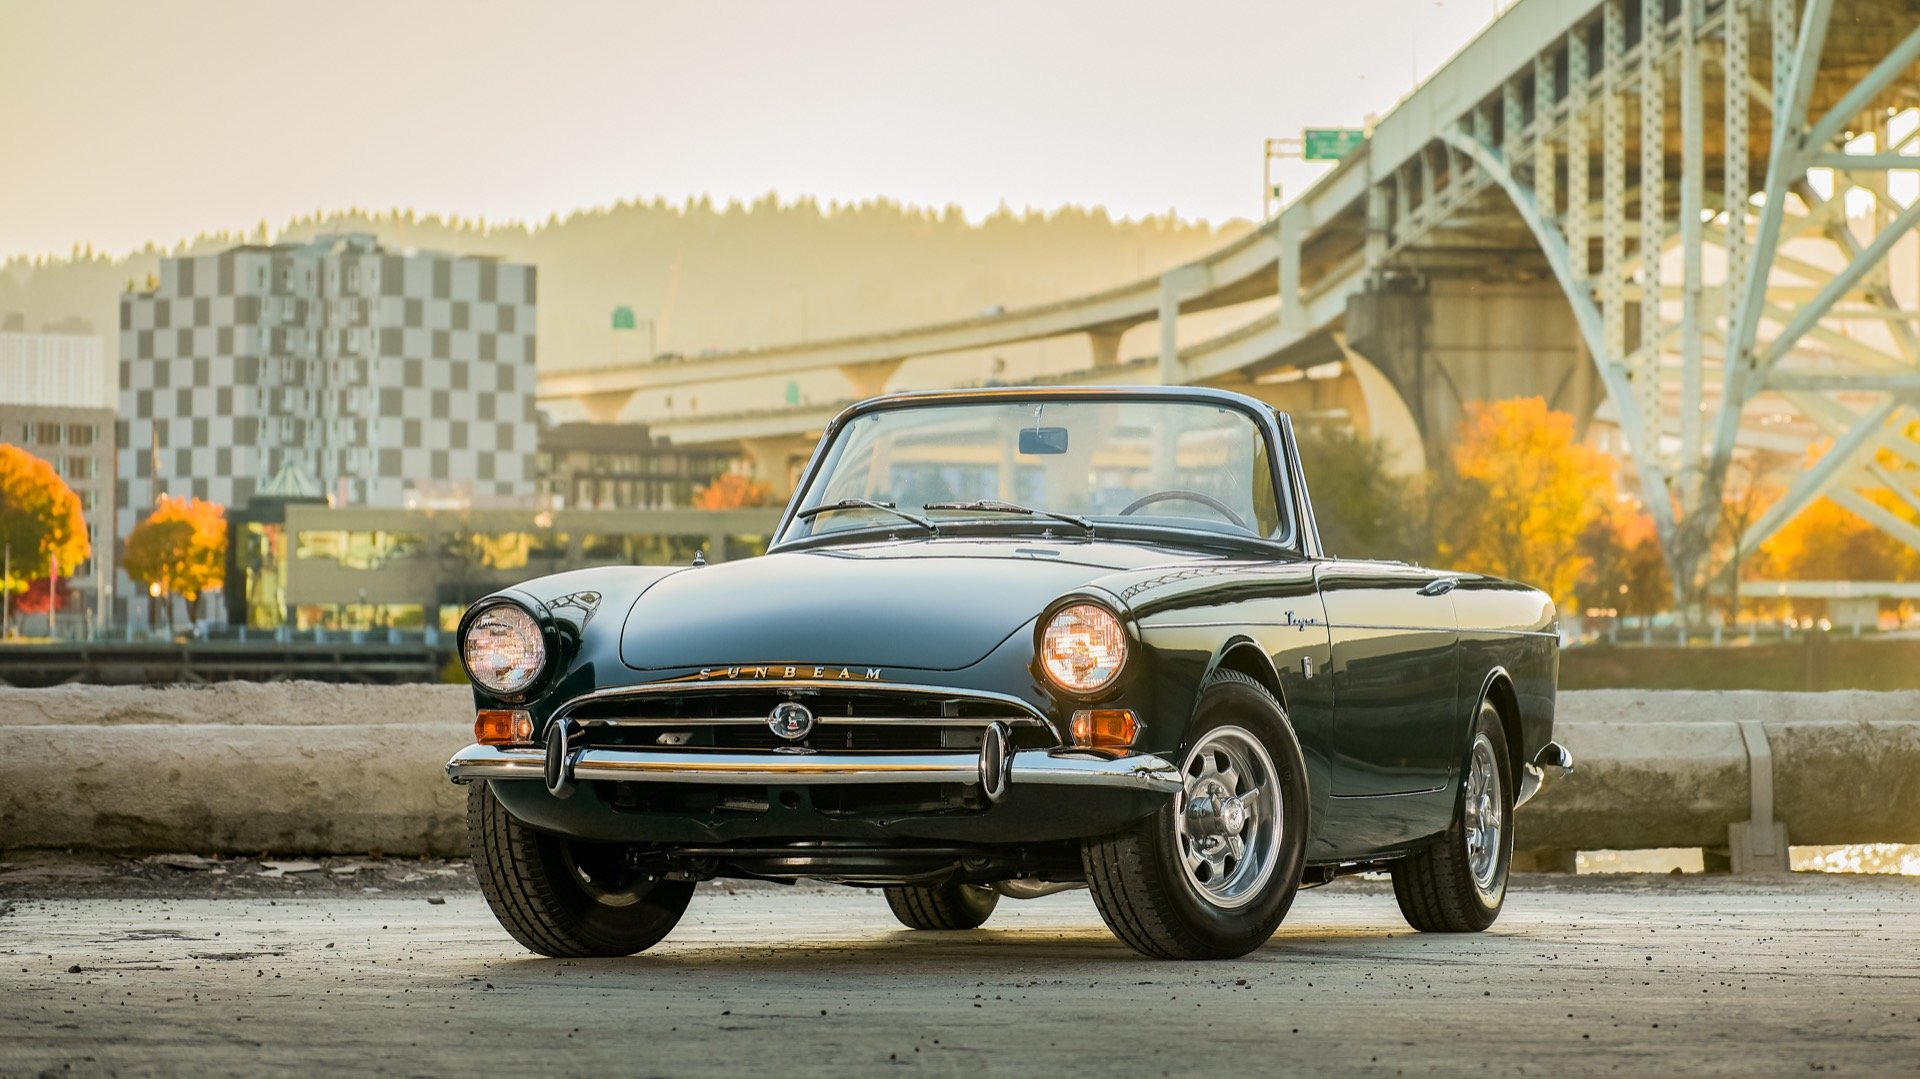 1965 Sunbeam Tiger MkI Roadster(~)Coupe with HardTop For Sale (picture 1 of 6)